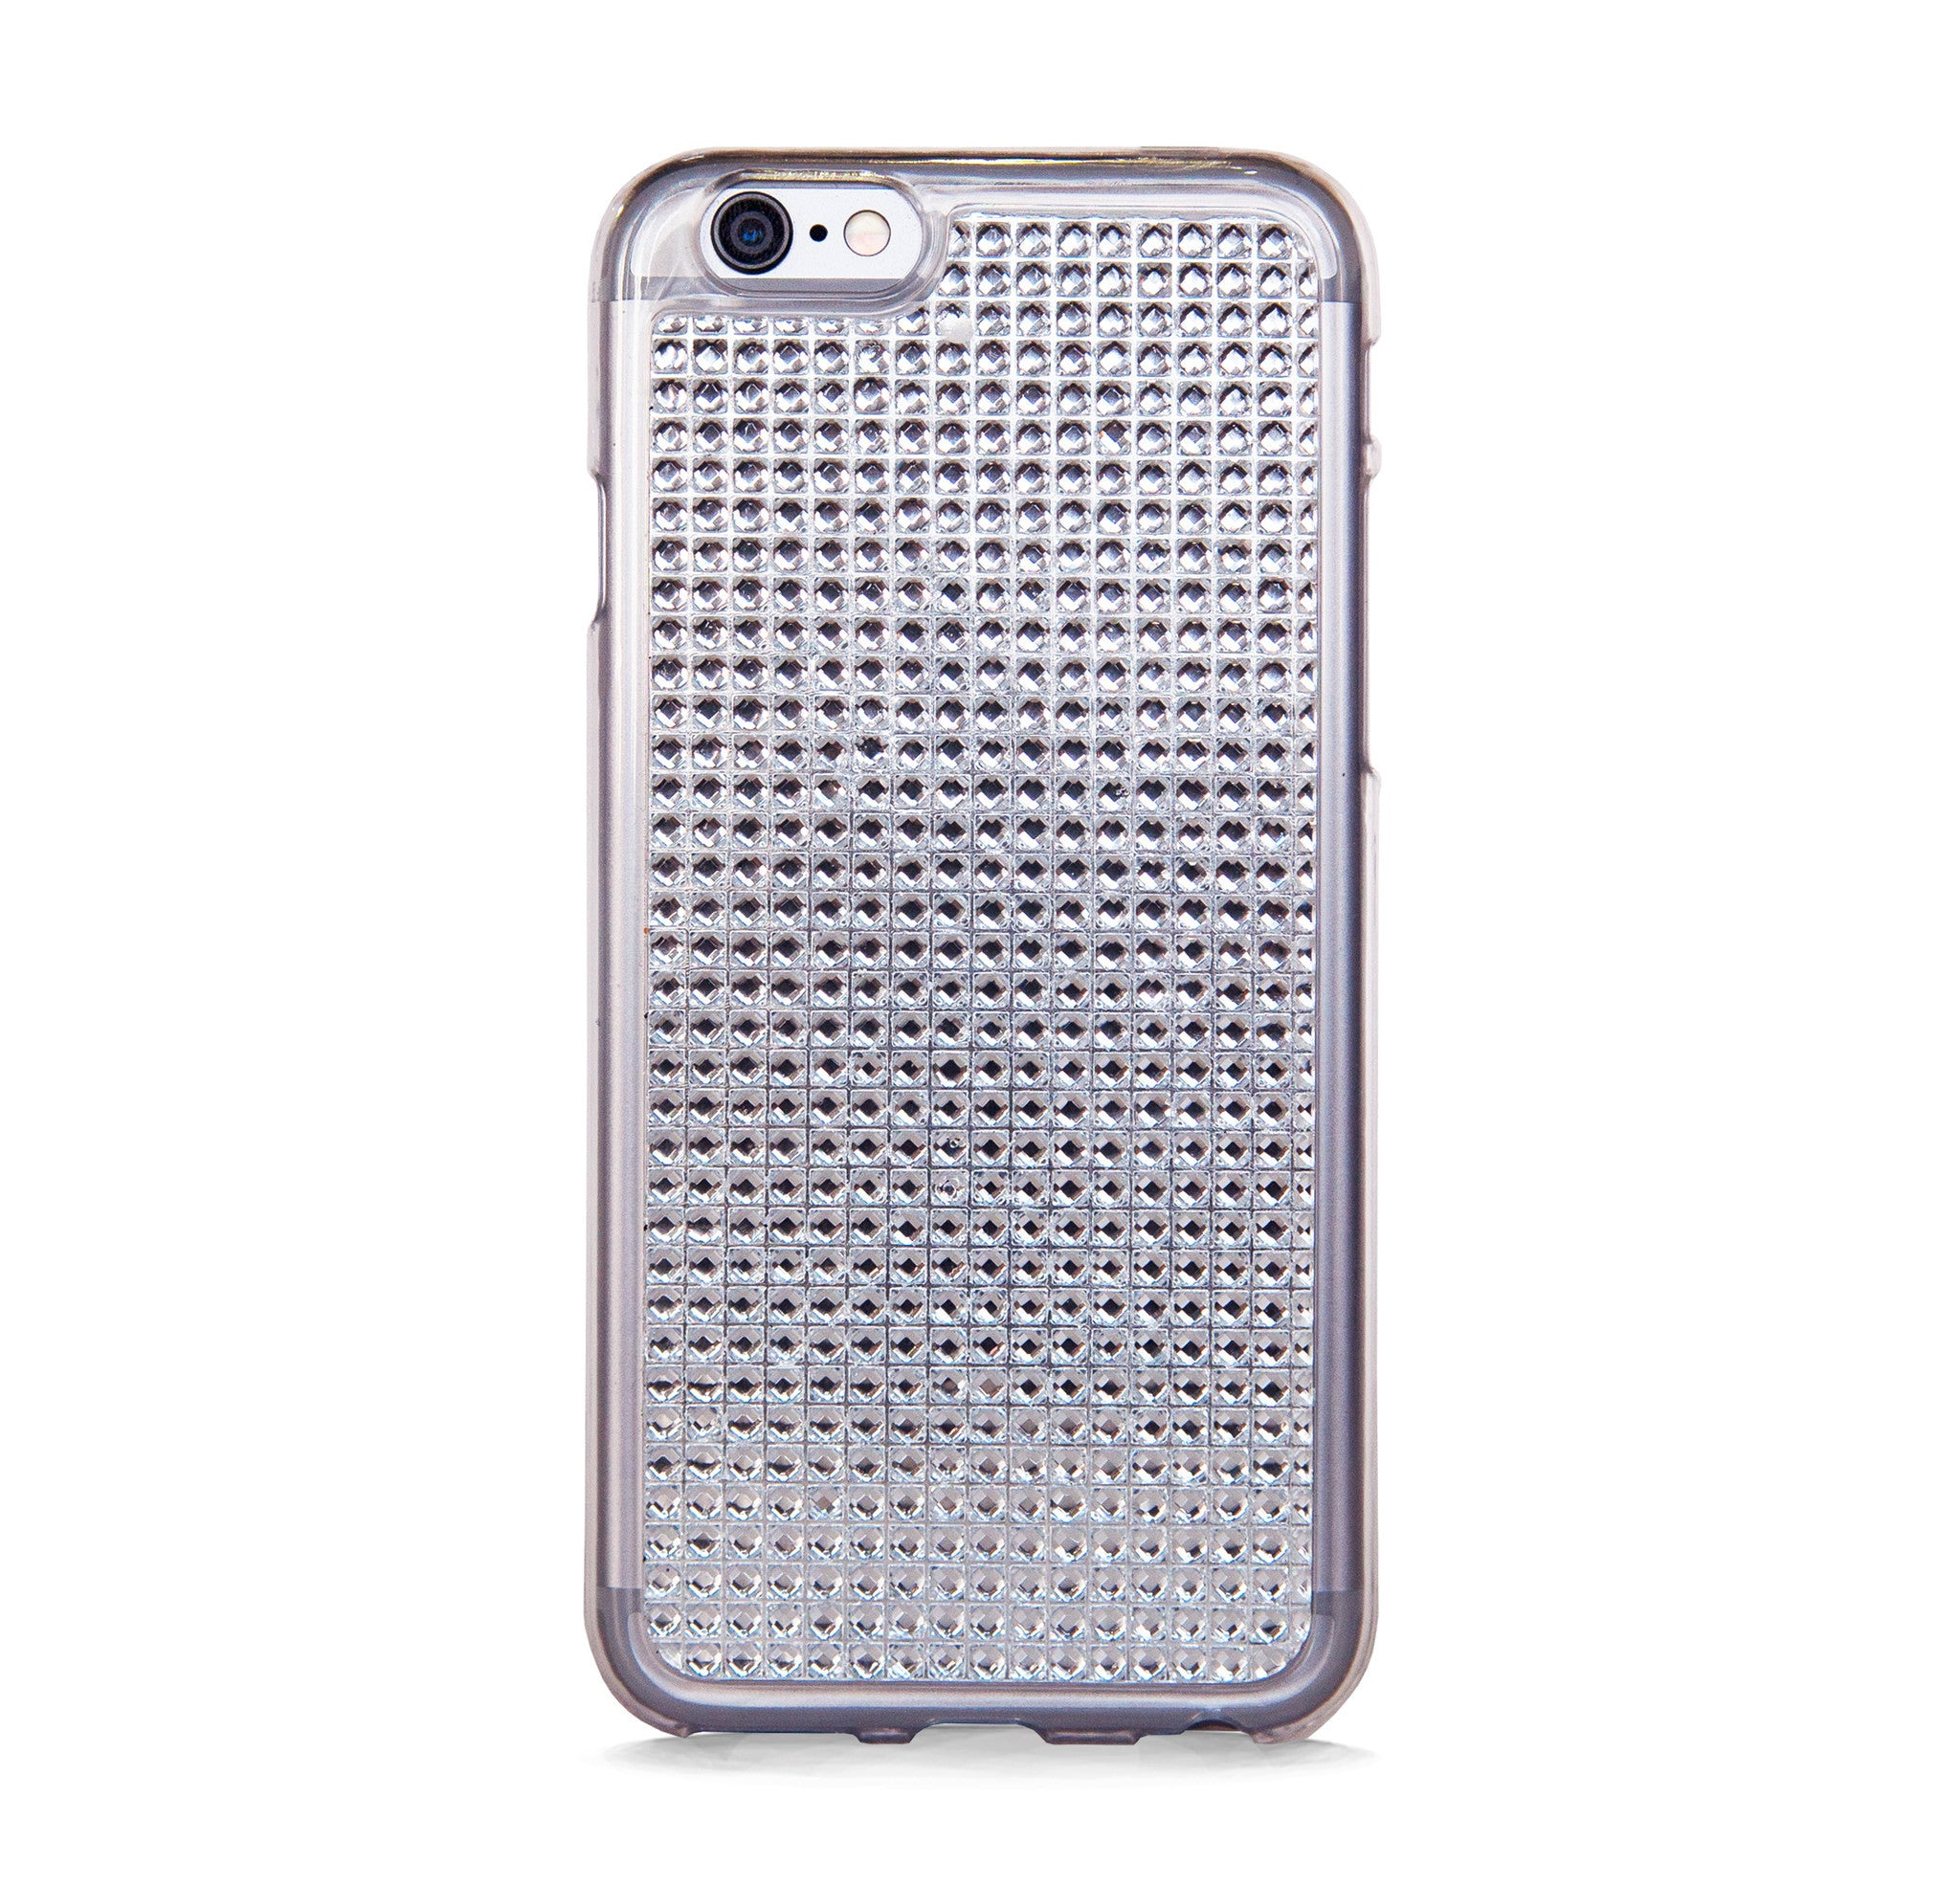 IPHONE 6/6s CLEAR RHINESTONES RUBBER CASE